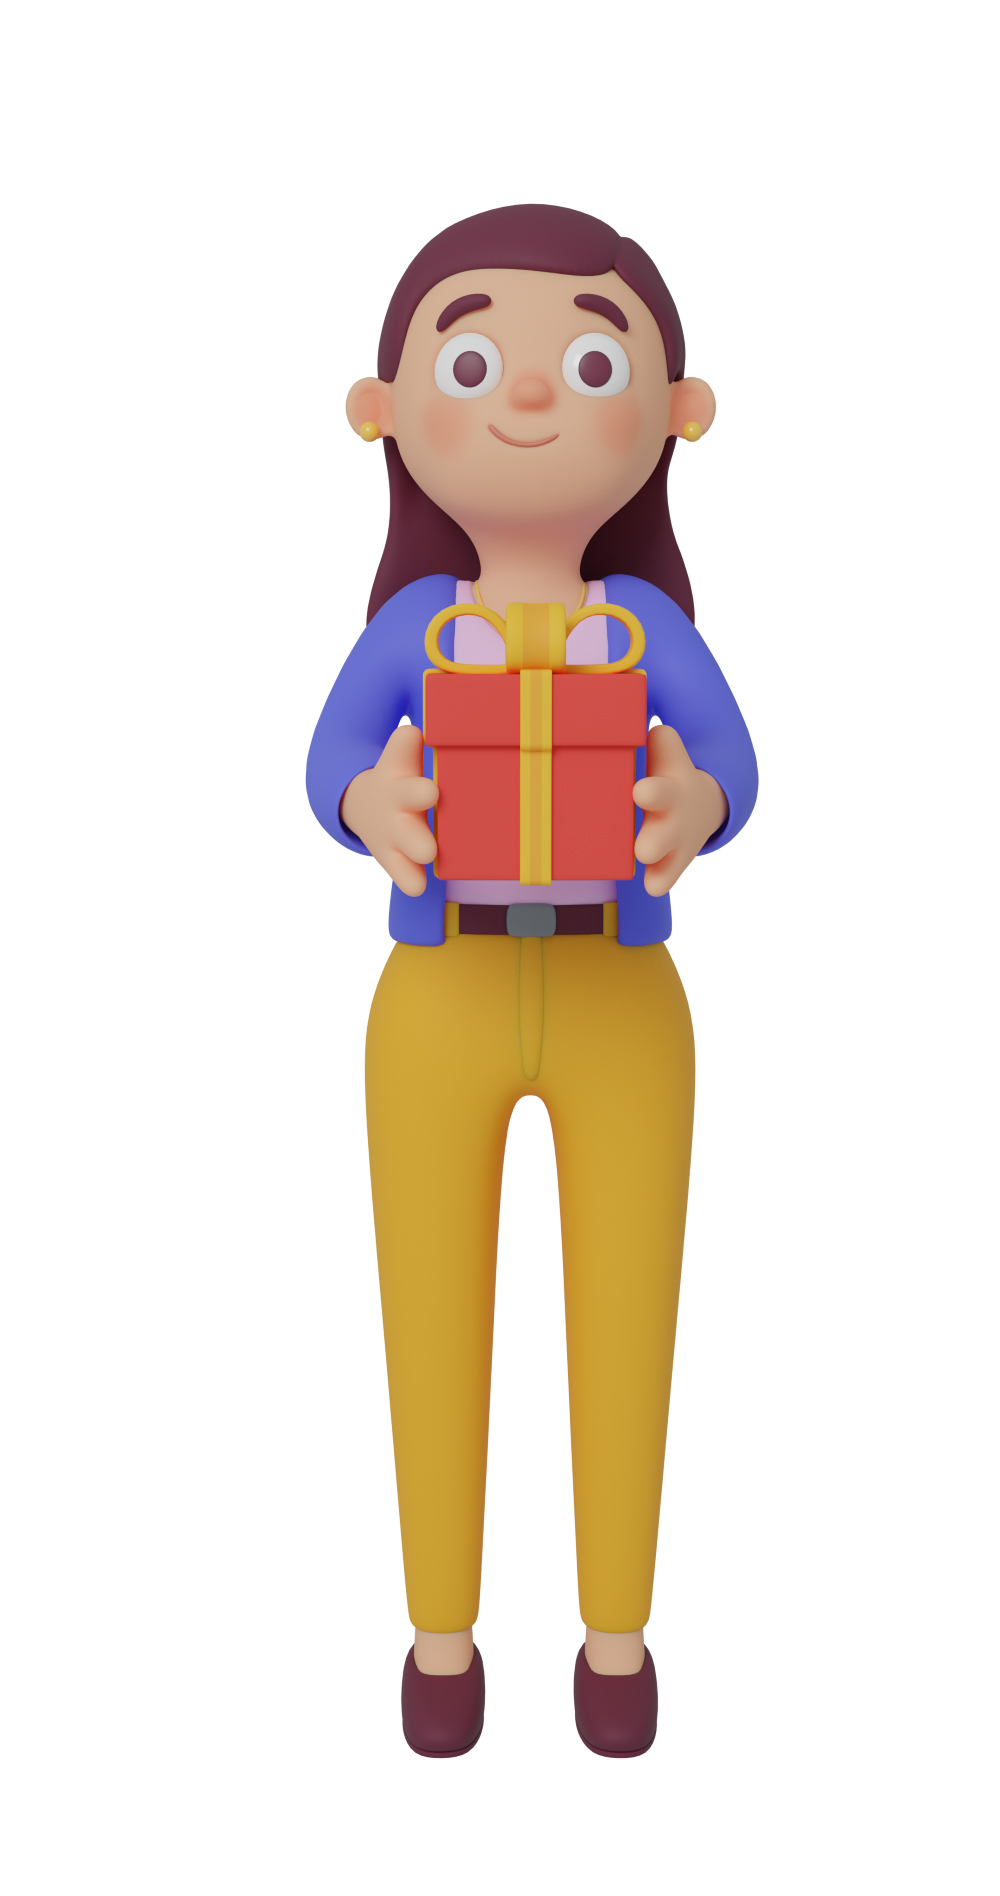 3d character design of a girl standing up